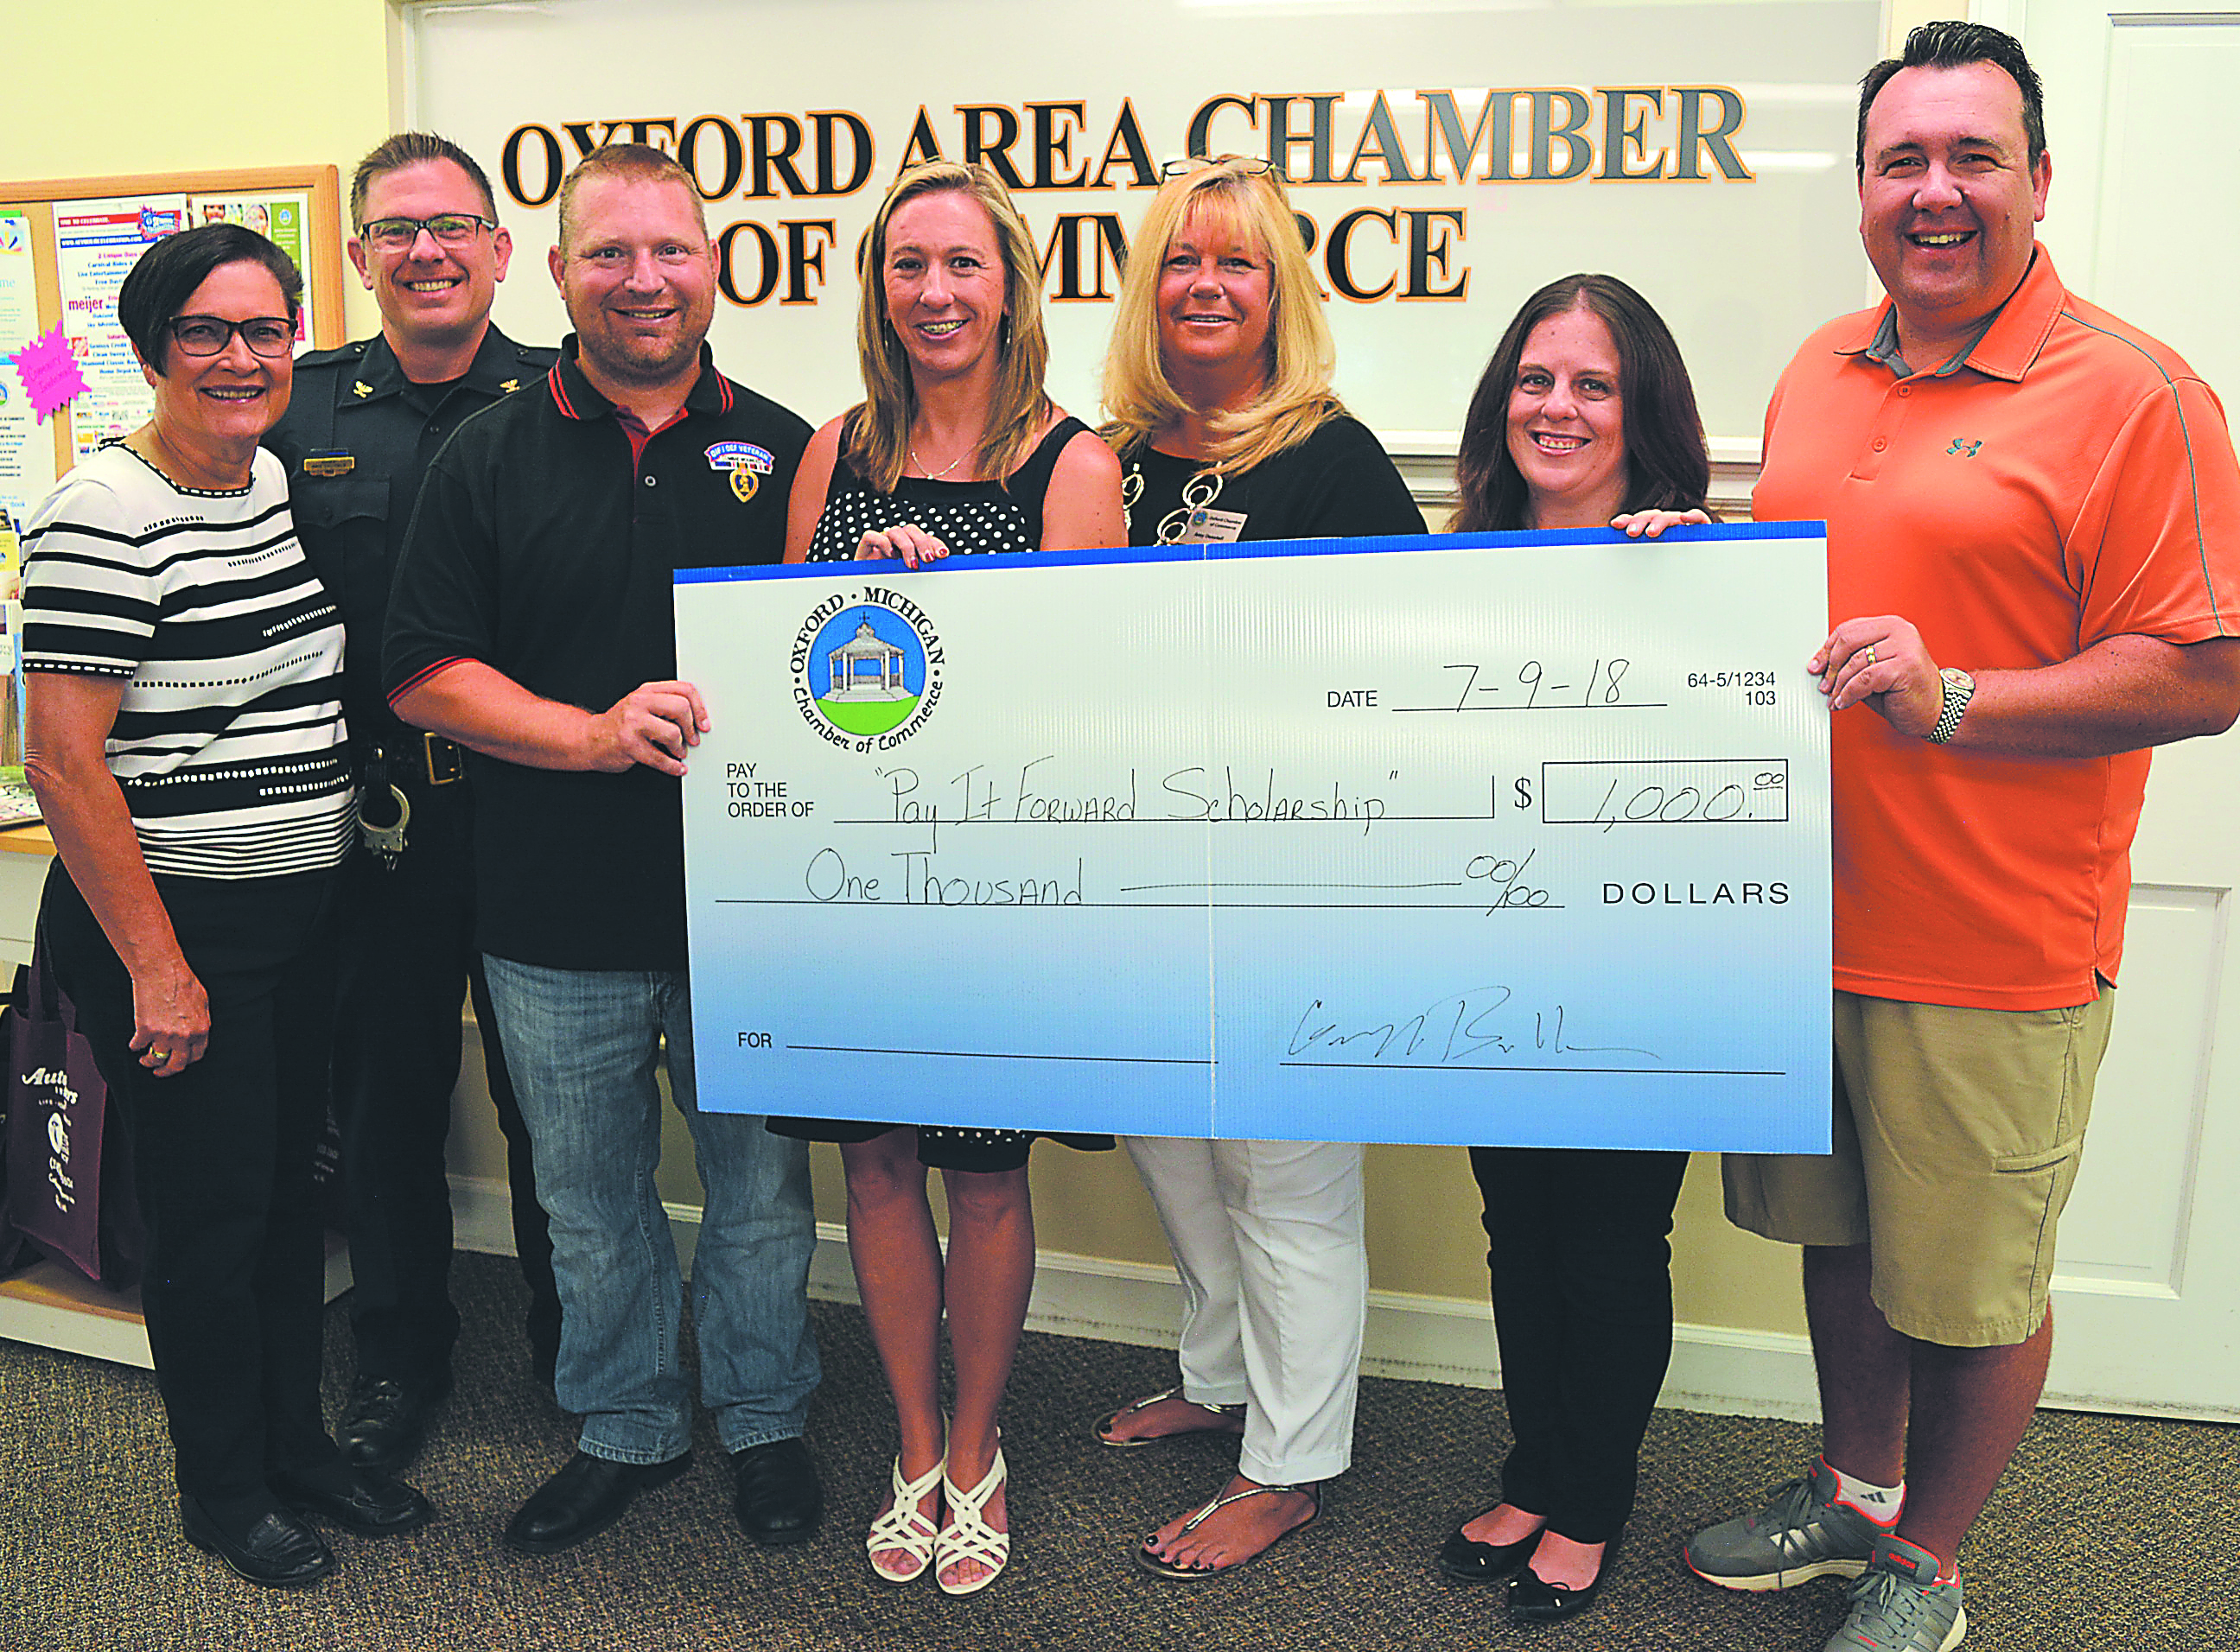 Holding the ceremonial $1,000 donation check for the Pay It Forward Scholarship are Oxford Chamber of Commerce President Deb Uren (from left), Oxford Village Police Chief Mike Solwold, Darrin and Amy Hafeli, Interim Chamber Director Amy Desotell and Chamber Board Members Alaina Sullivan and Geoff Bullen. Photo by C.J. Carnacchio.